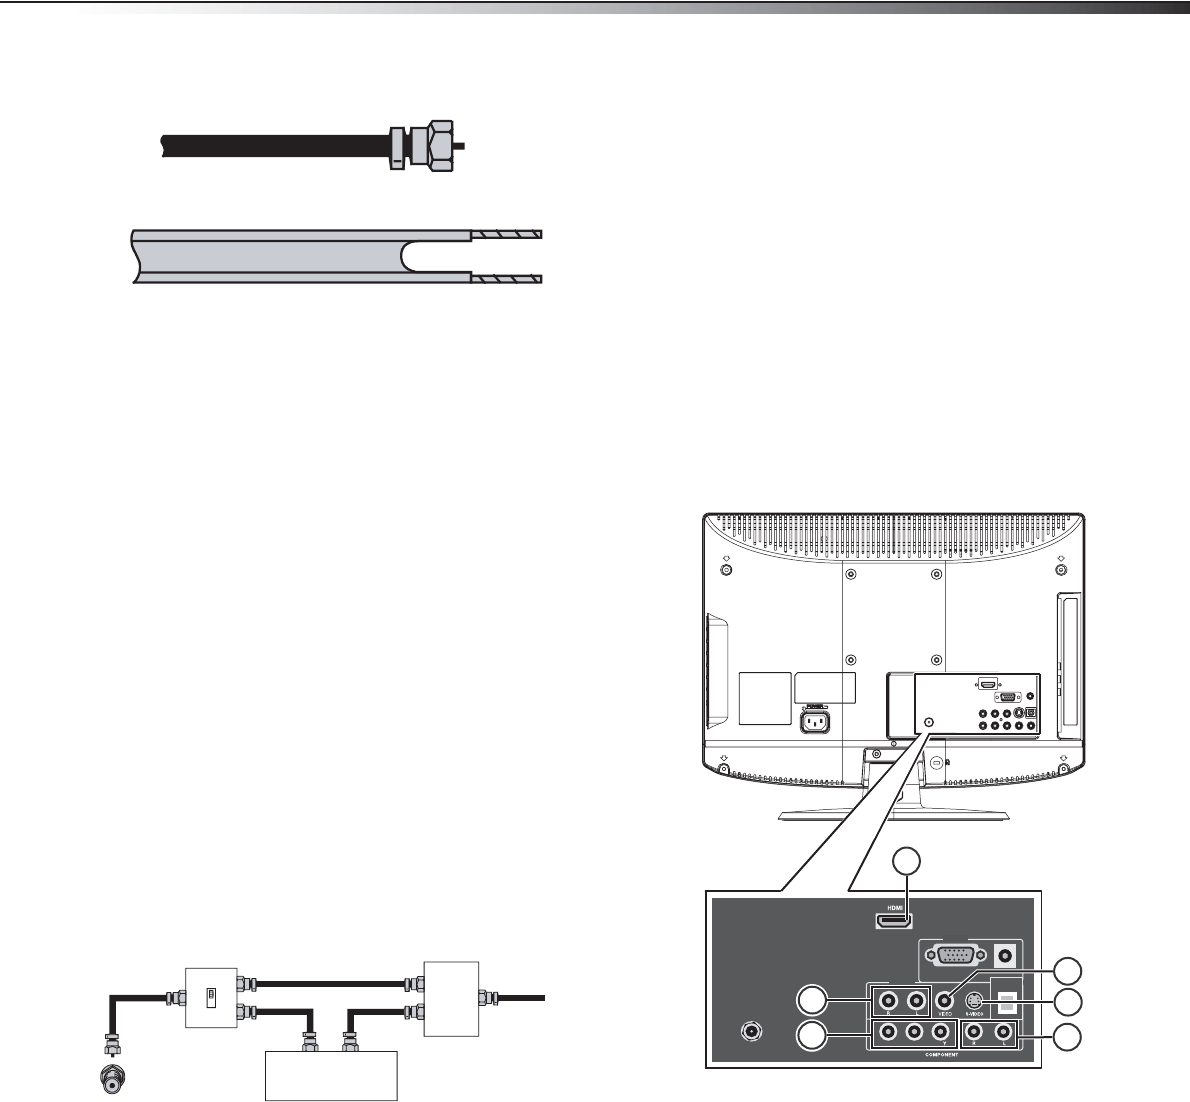 Page 7 of Dynex Flat Panel Television DX-LCD19-09 User